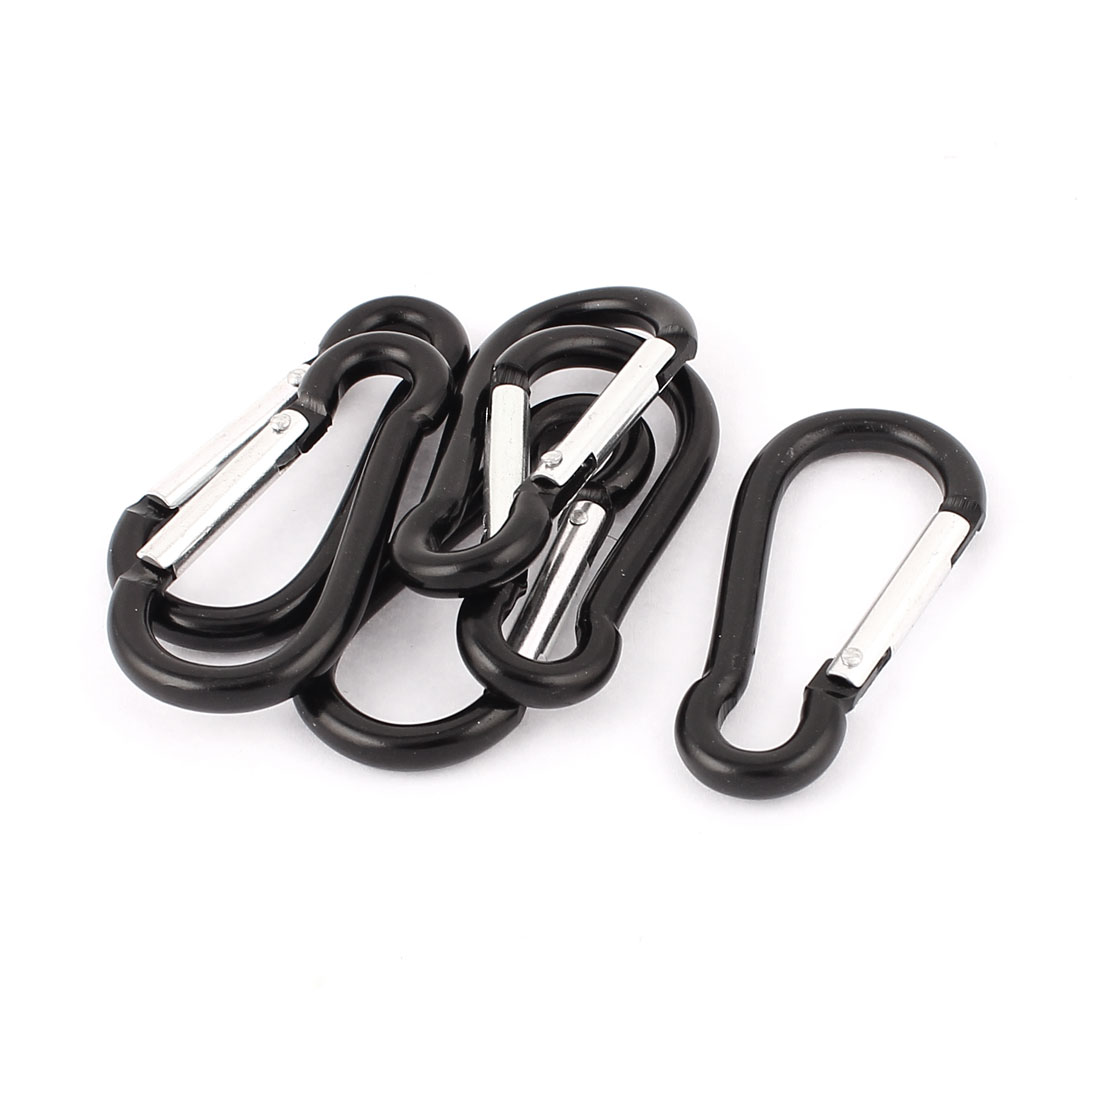 6 Pcs Black Aluminum Alloy Carabiner Grab Hook Clip Holder